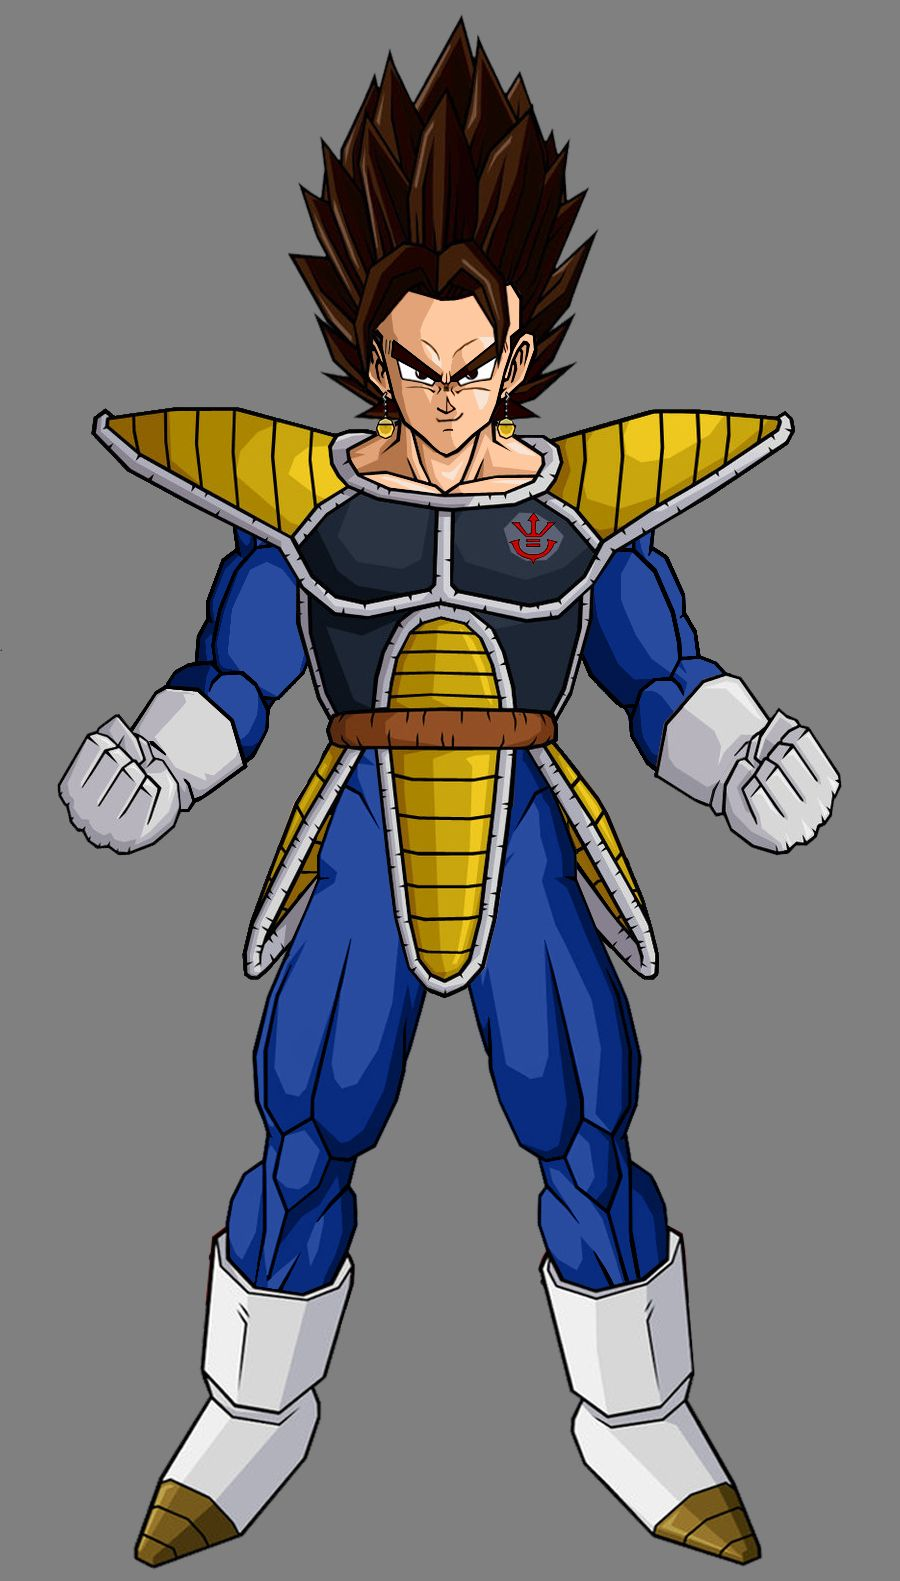 Vegetto saiyan armor dragonball pinterest goku - Naruto and dragonball z ...